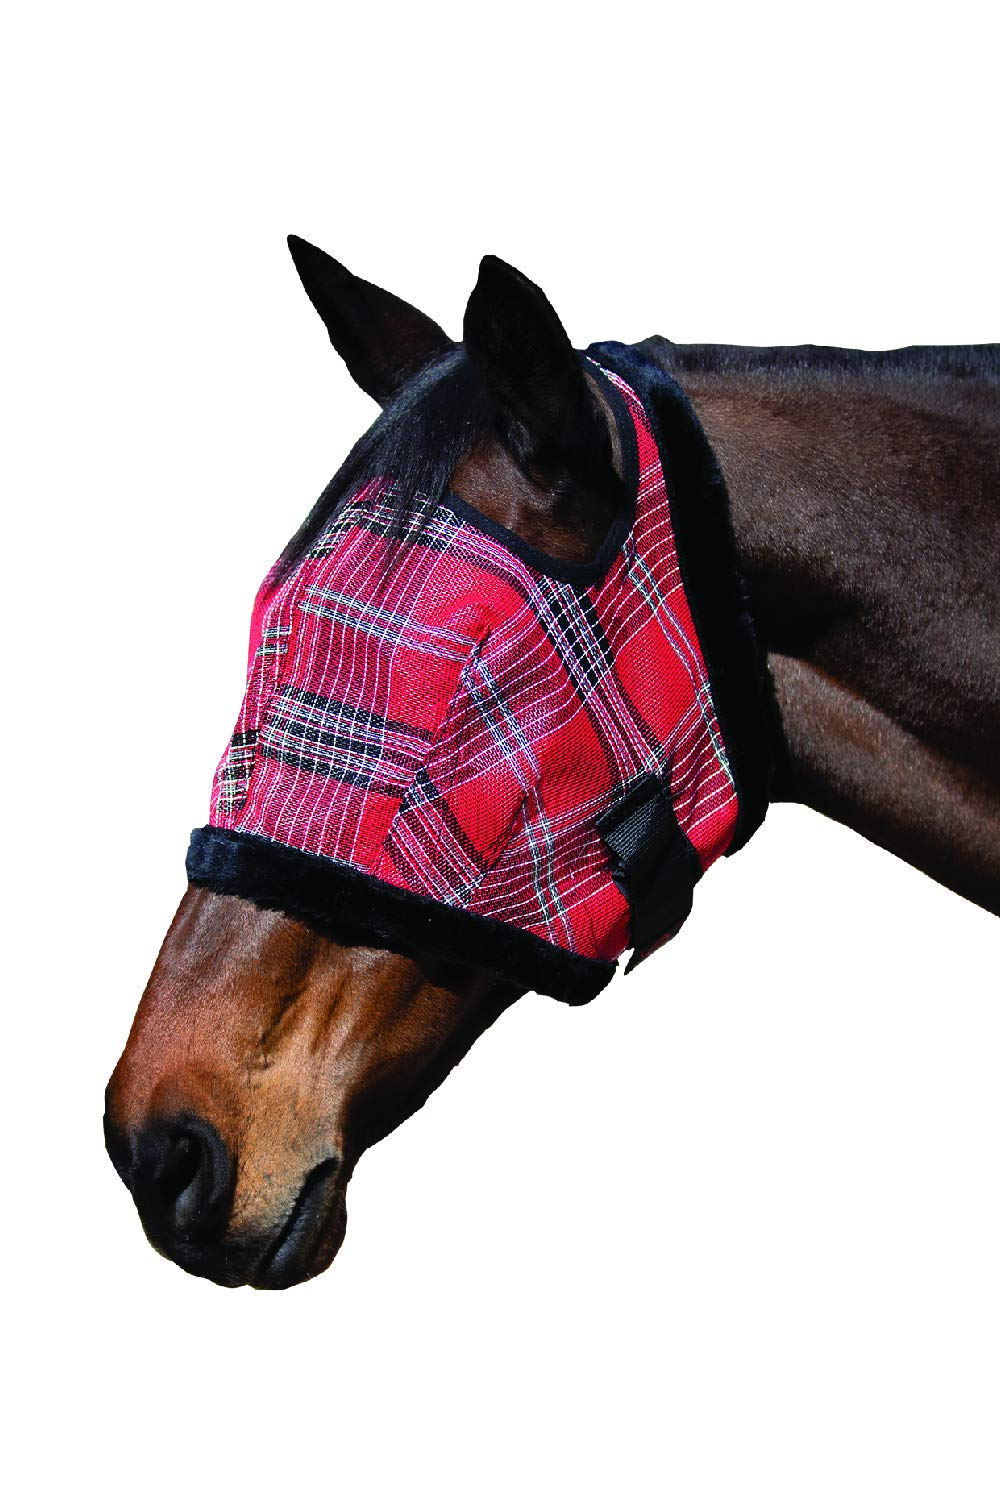 Kensington Fly Mask Fleece Trim for Horses - Protects Face, Eyes from Flies, UV Rays While Allowing Full Visibility - Breathable Non Heat Transferring, Perfect Year Round, (B, Deluxe Red) by Kensington Protective Products